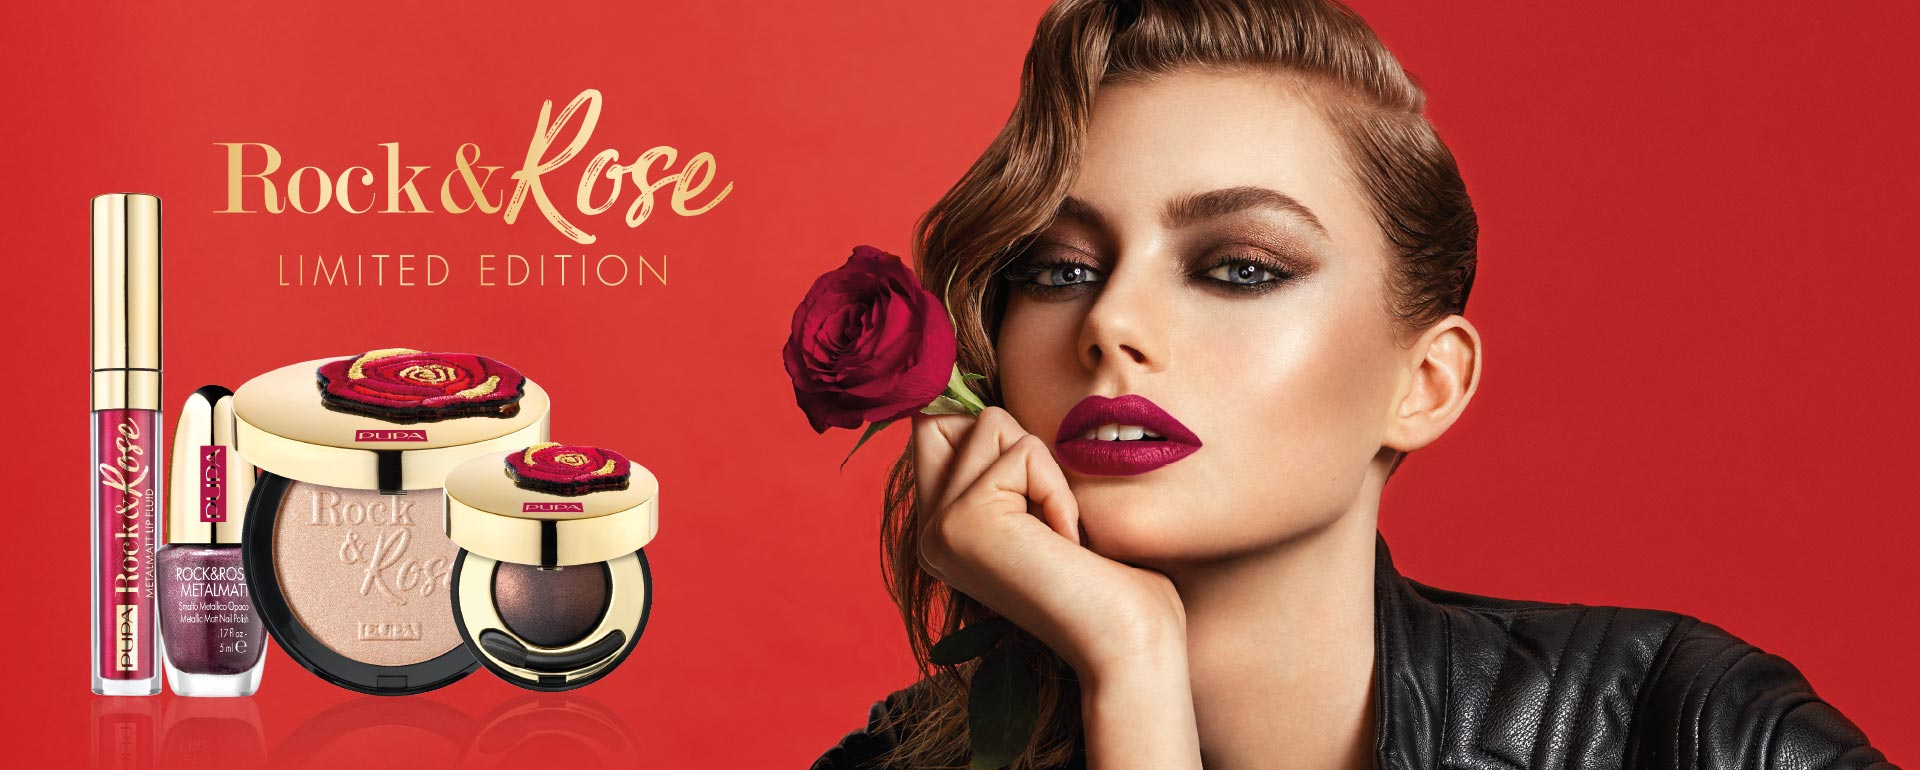 Rock & Rose Limited Edition